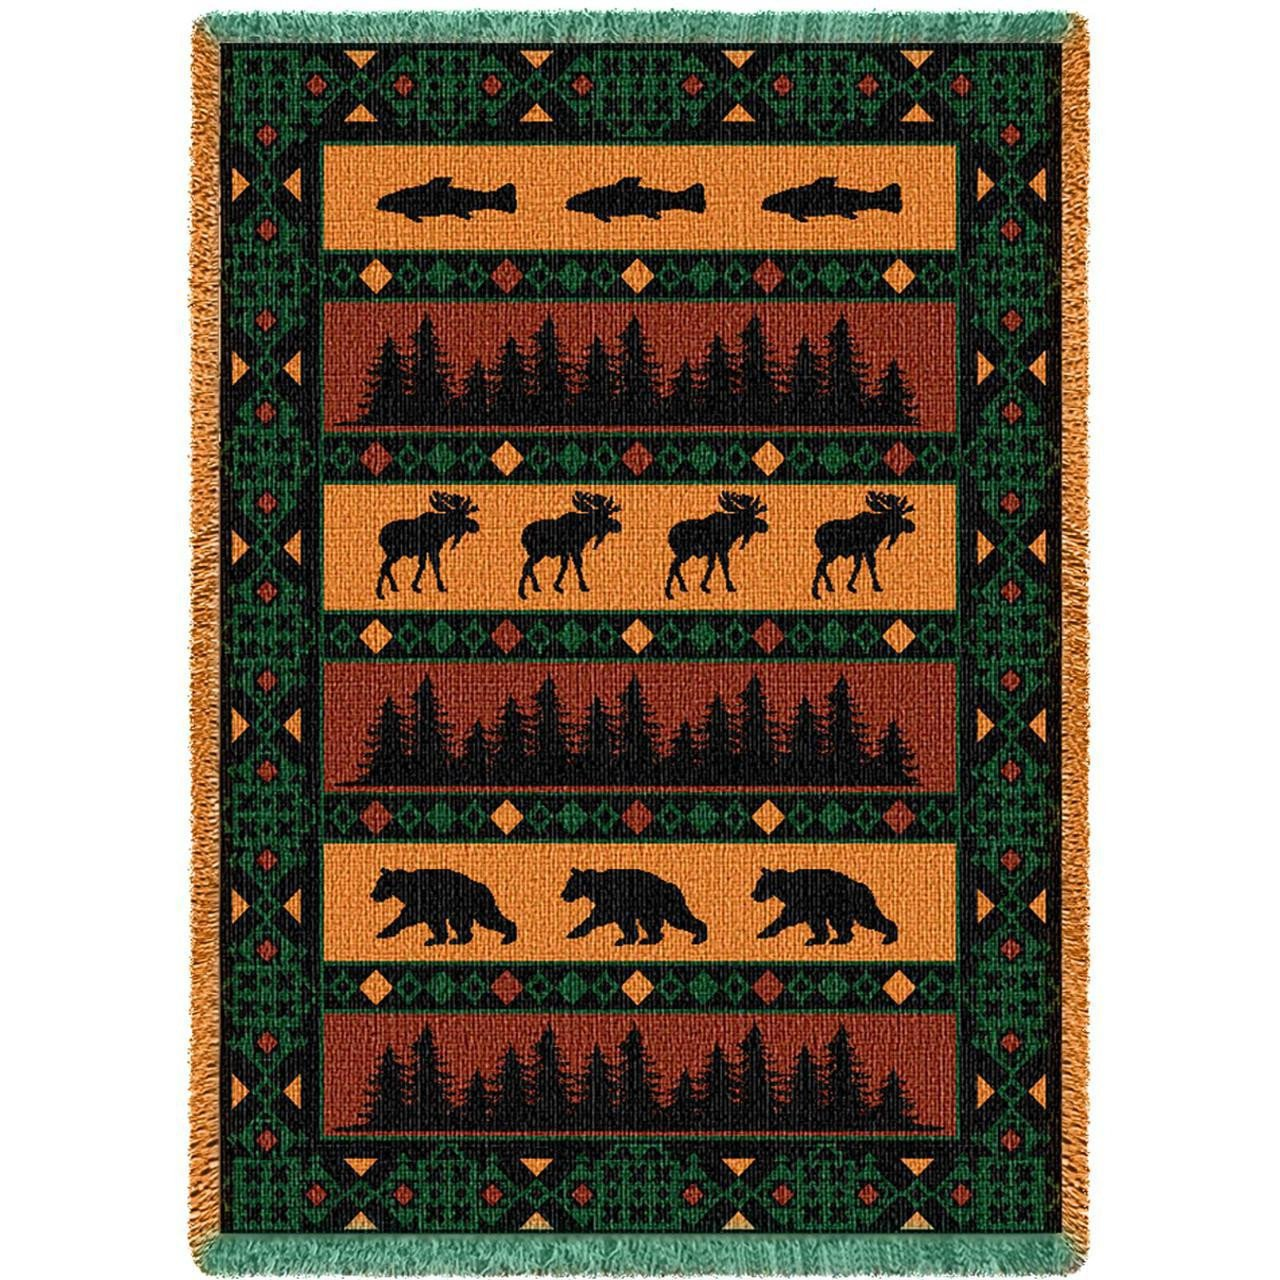 Large Elk Bear Lodge Throw Woven Blanket